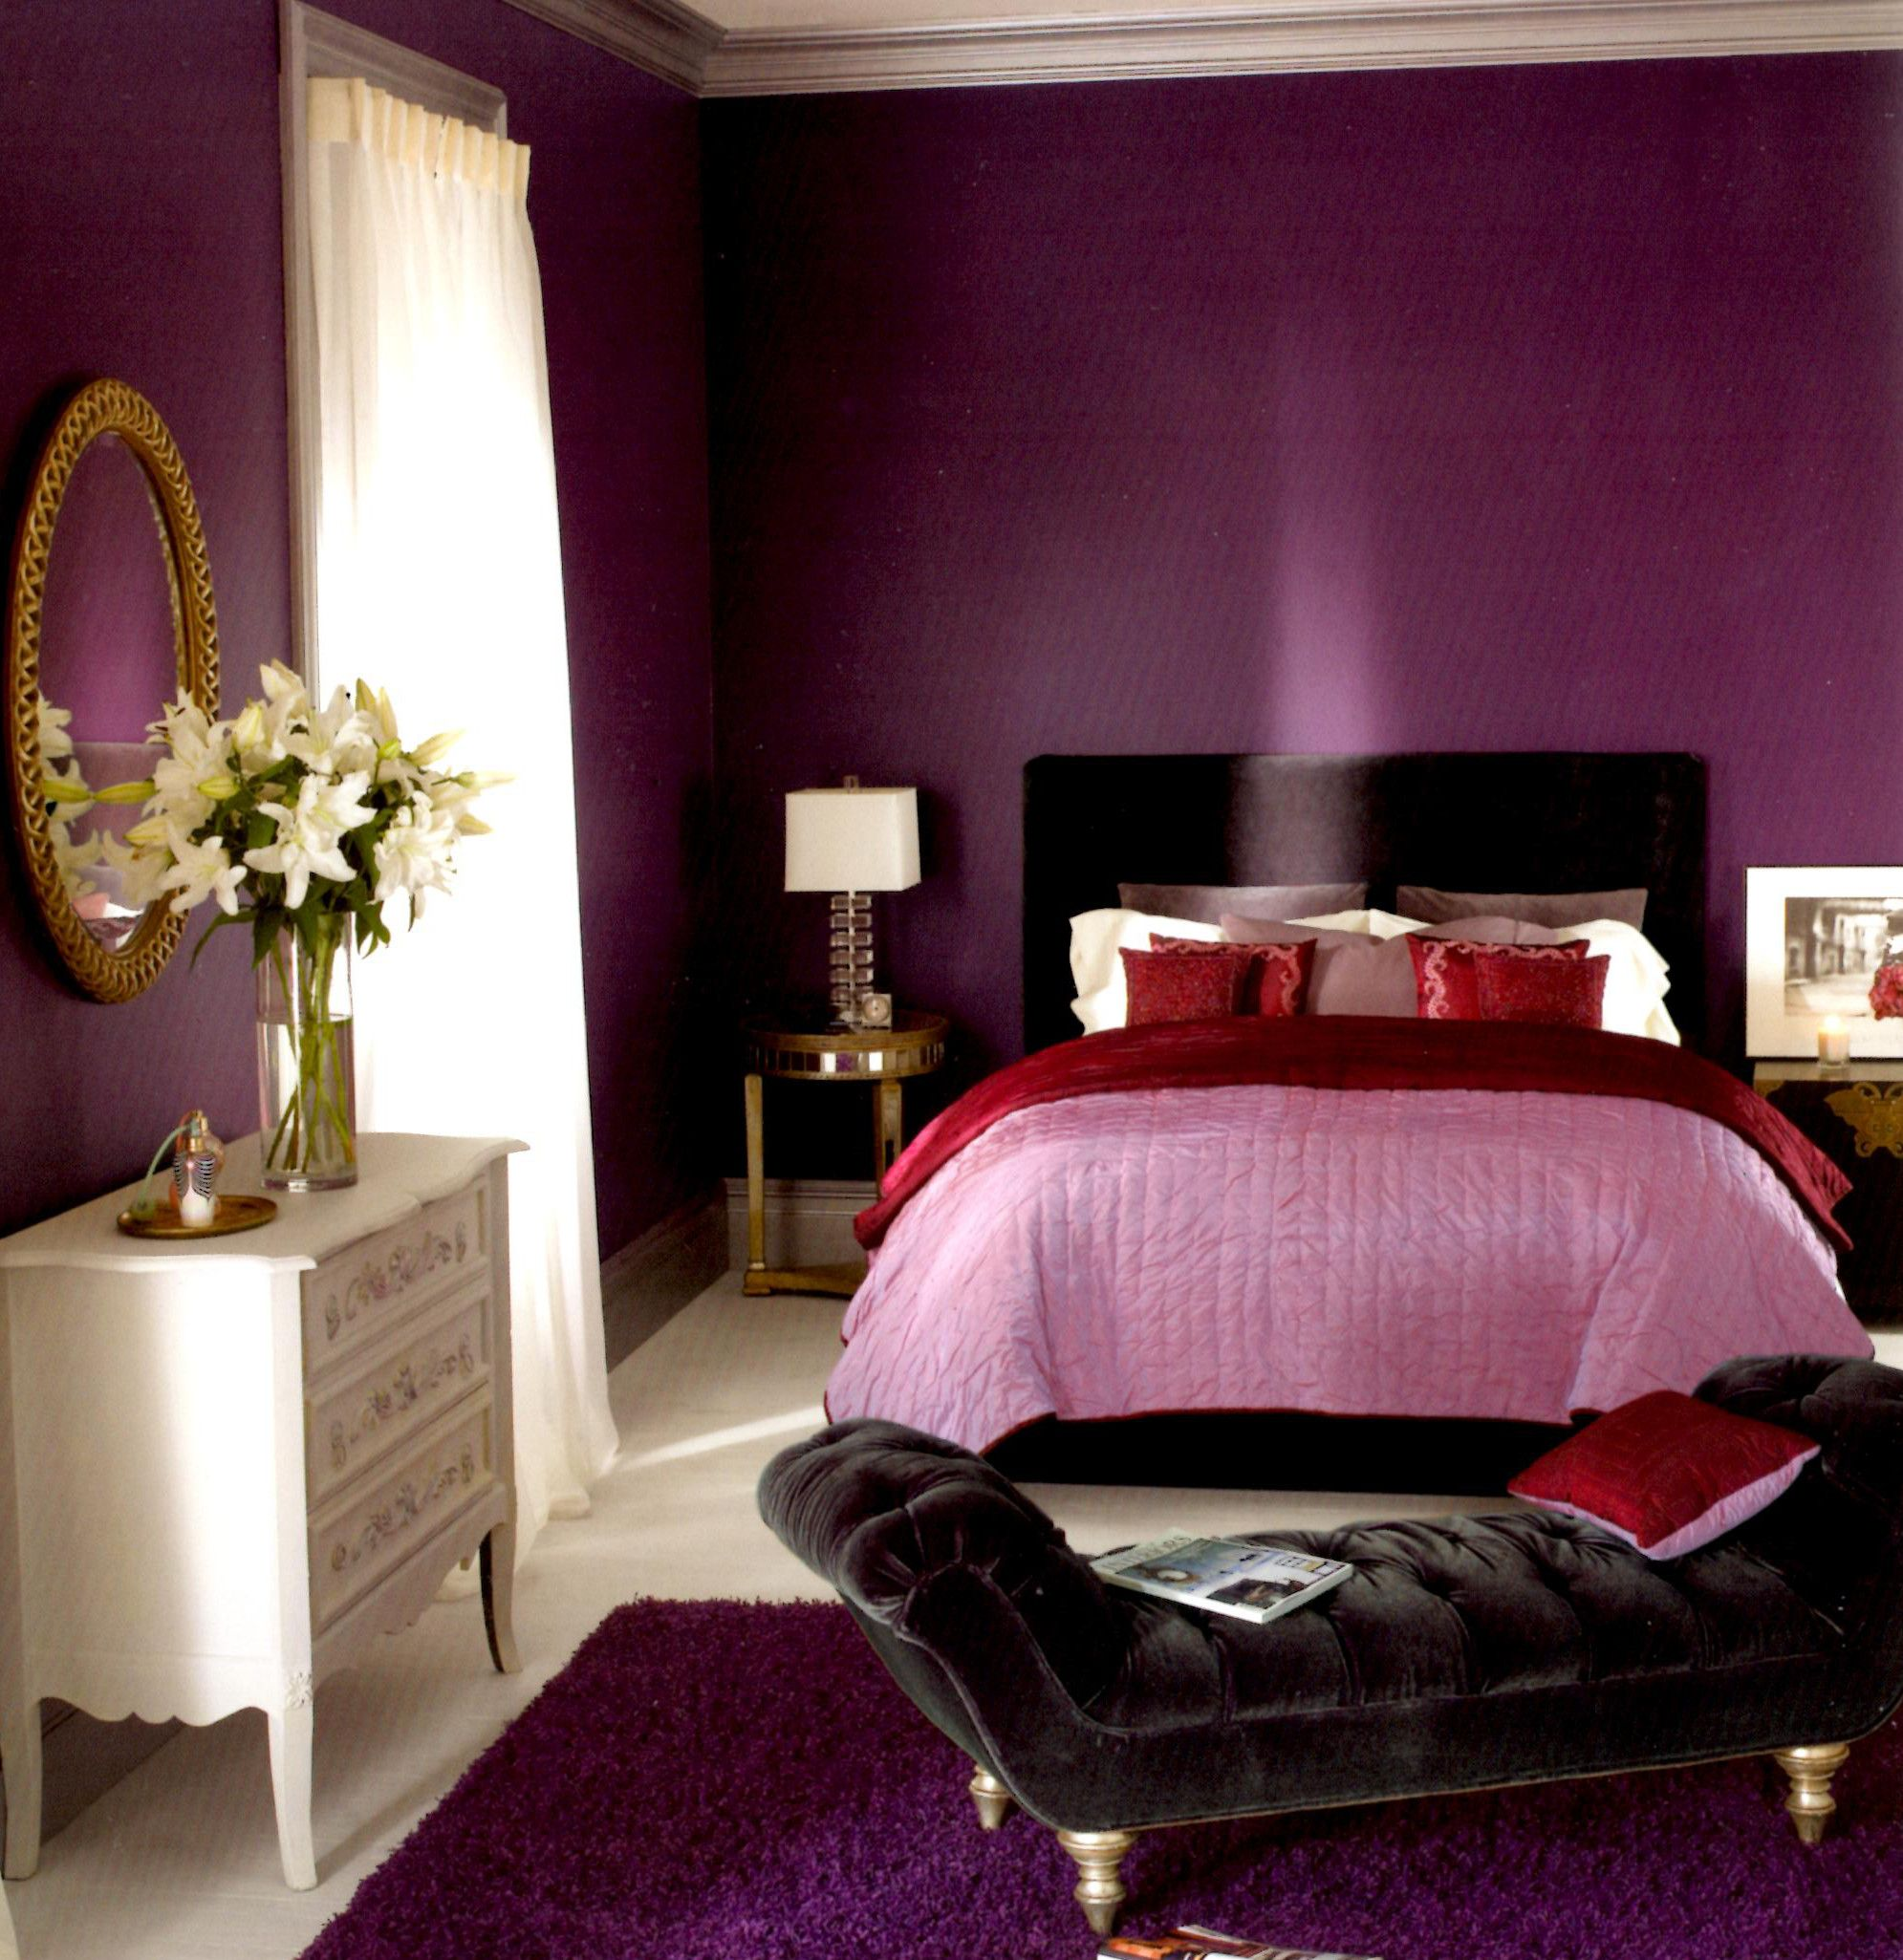 Violet bedroom color ideas - Remarkable Purple Wall Paneling Colors As Smart Bedroom Paint Ideas In Teenage Bedroom Decor Also White